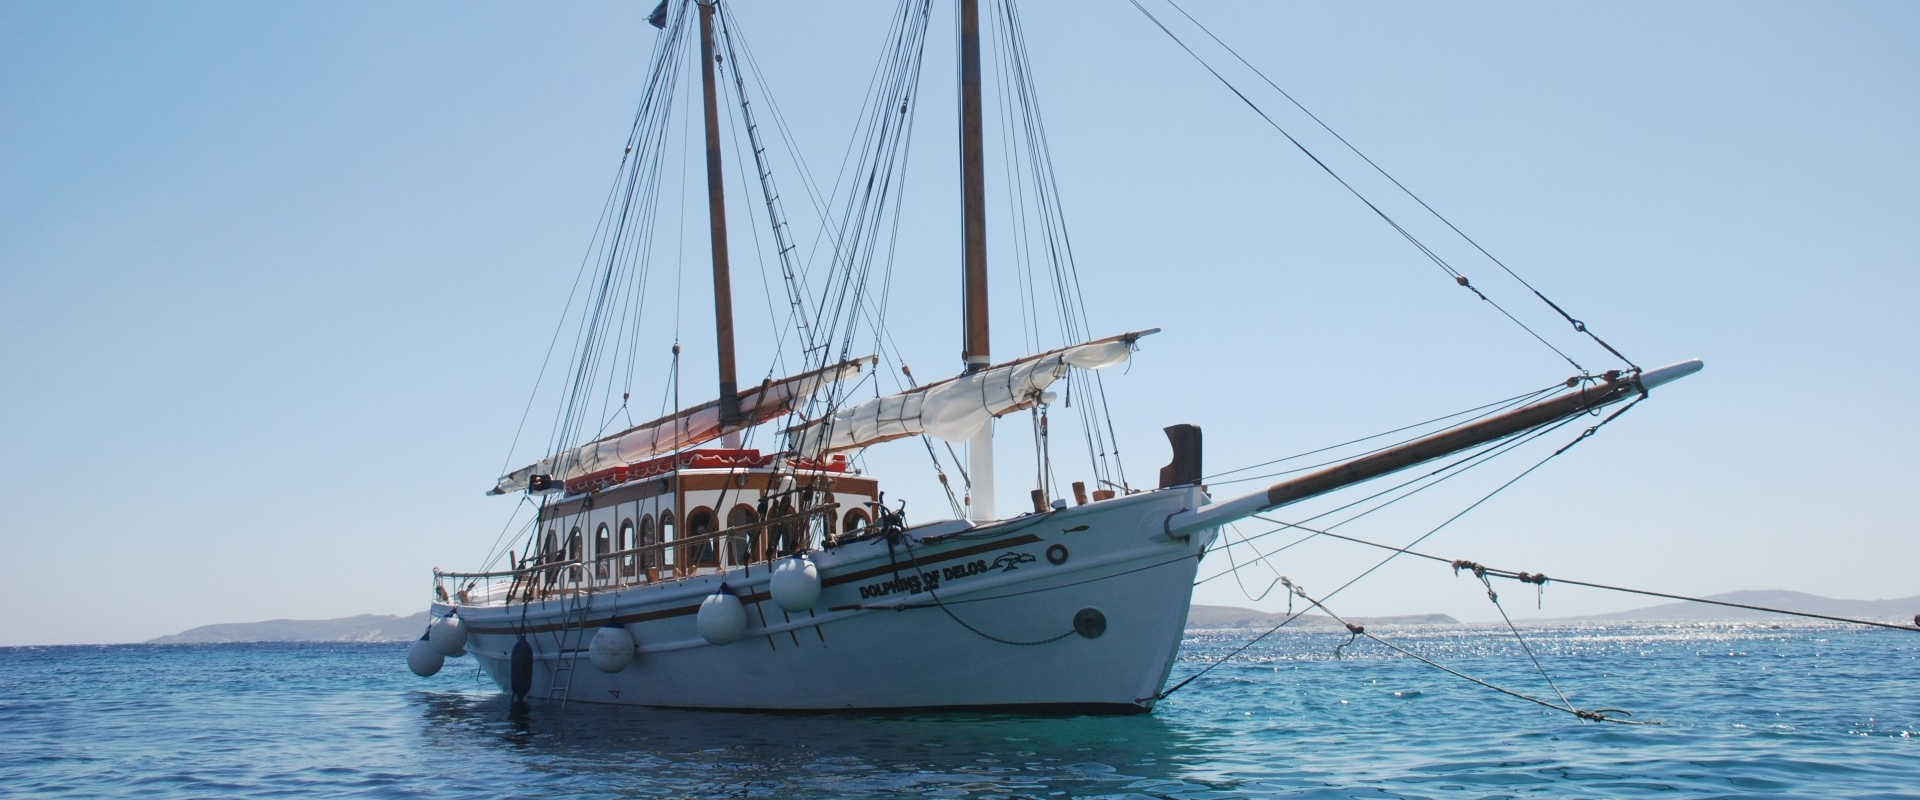 Dolphins of Delos Cruise Boat - Wooden traditional handcrafted Trehantiri